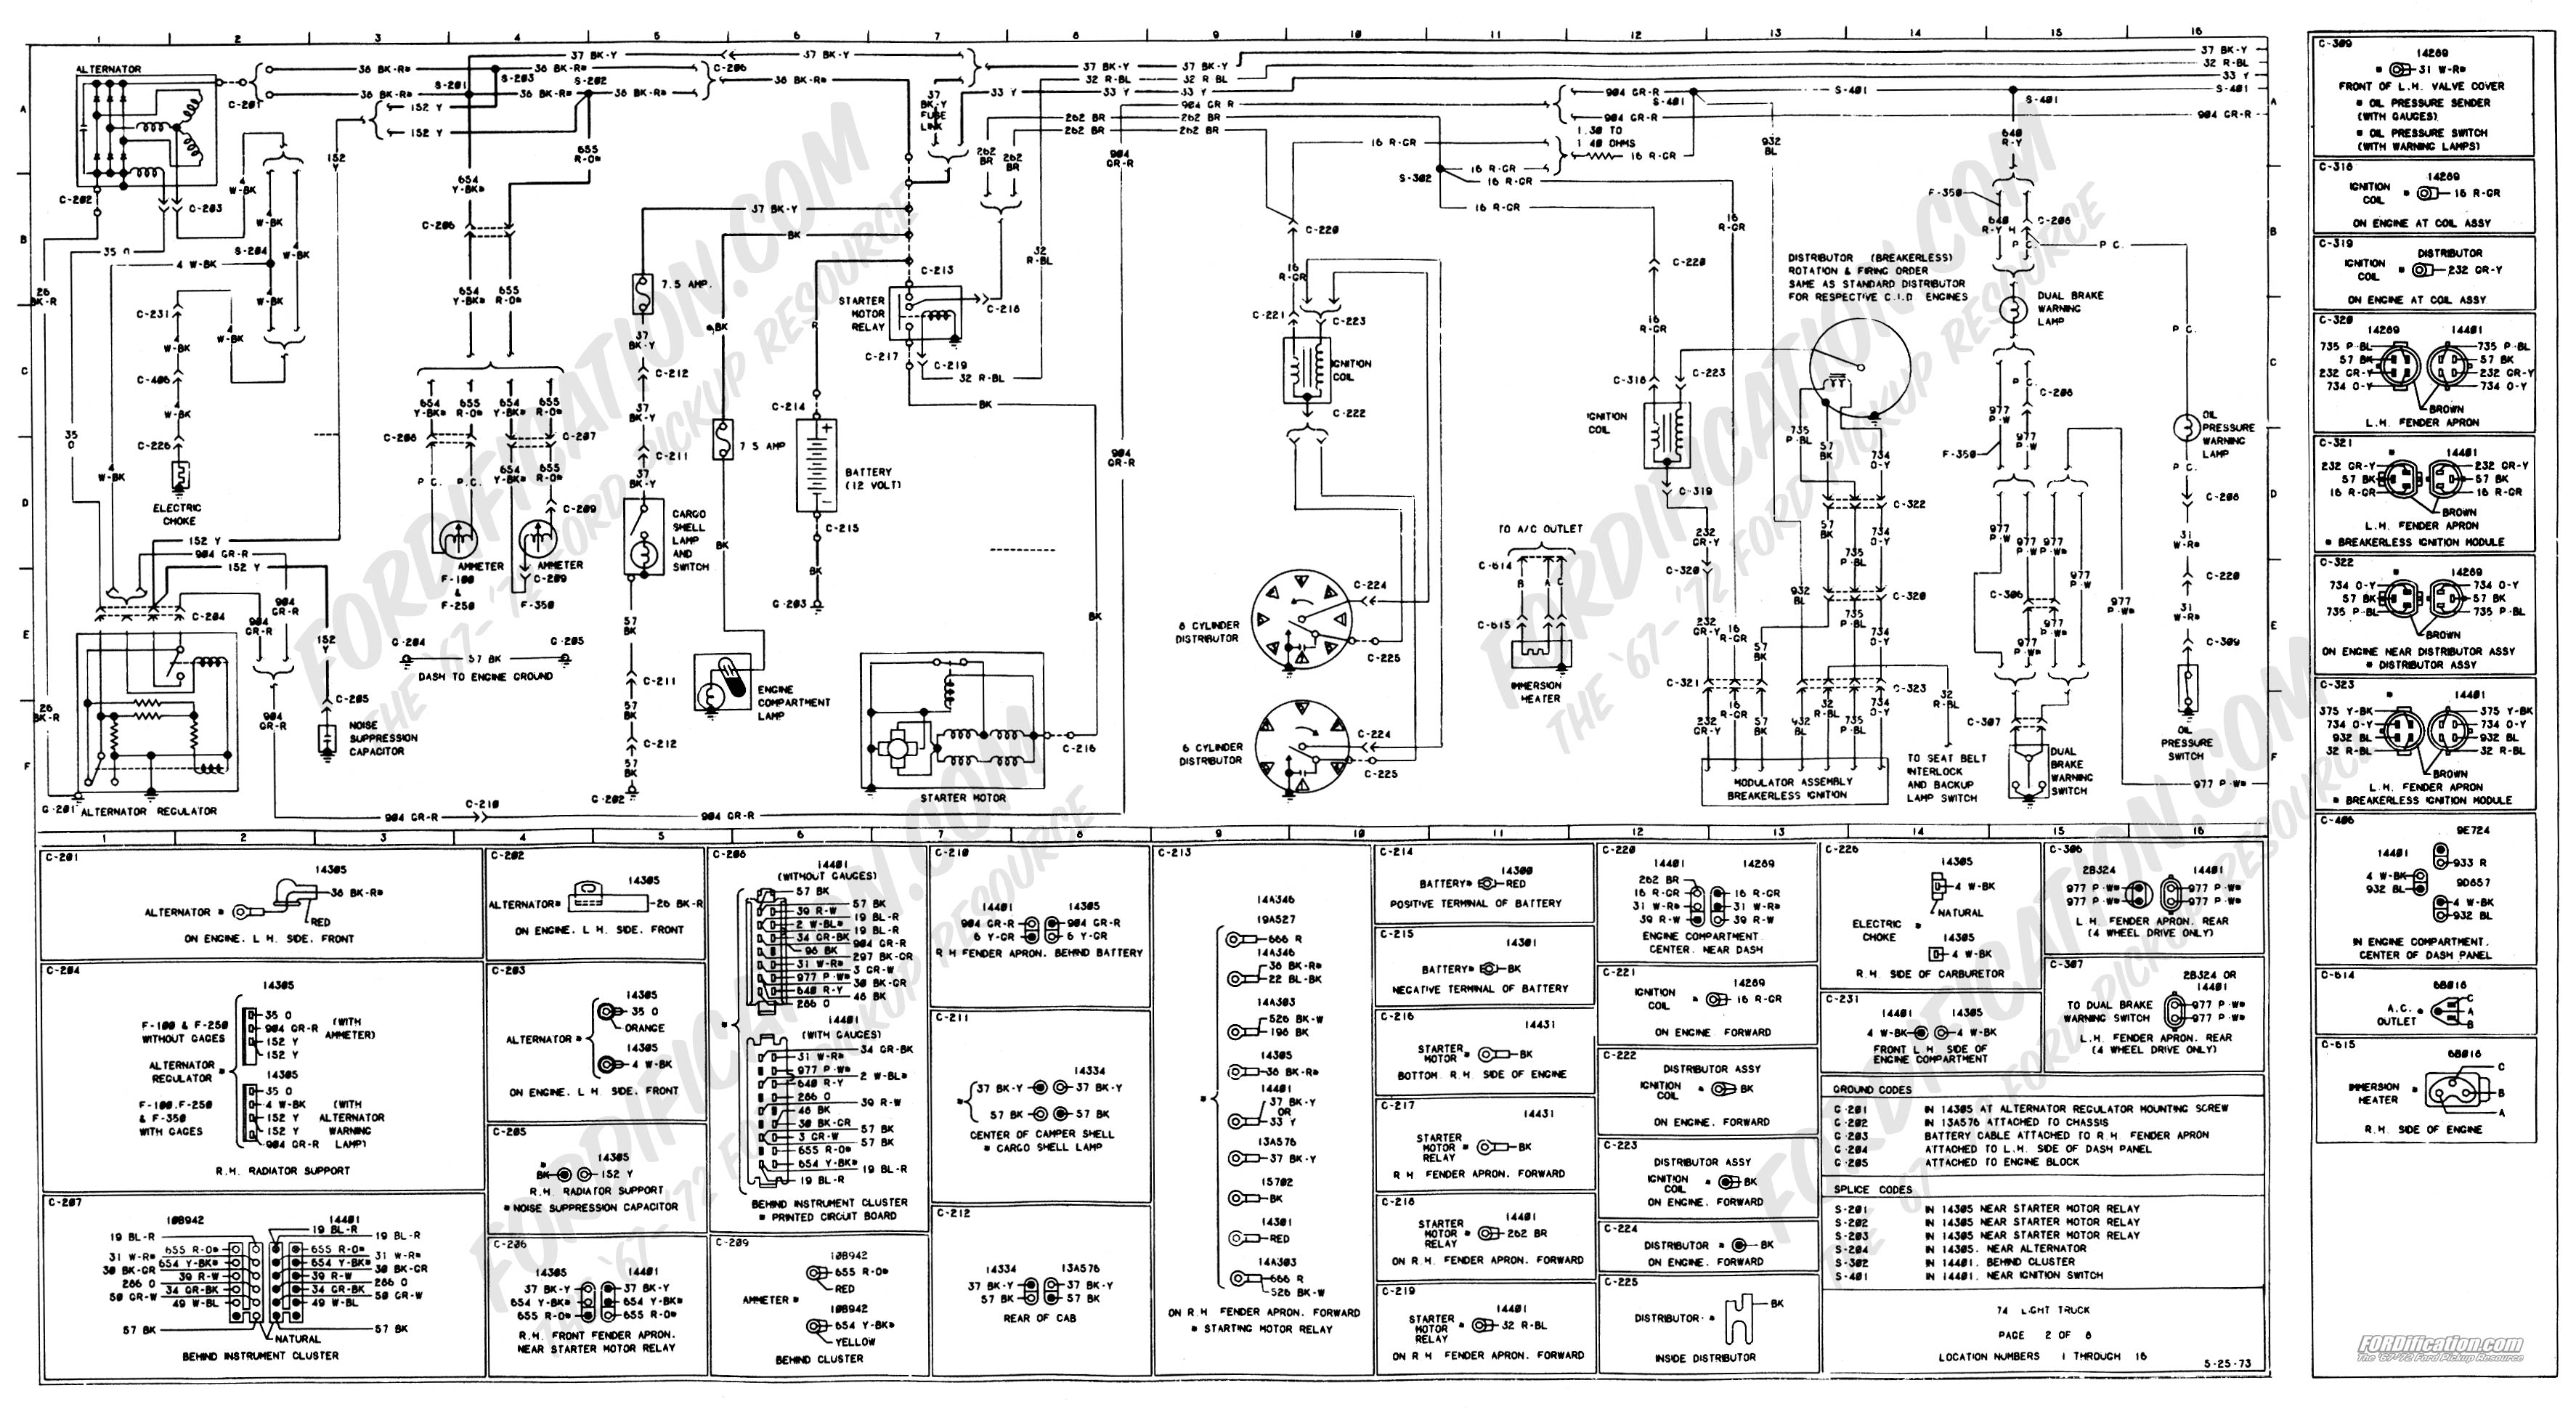 78 F150 Wiring Diagram Instrument Panel Gauges Content Resource Of Corvette 1973 1979 Ford Truck Diagrams Schematics Fordification Net Rh Camaro 1977 F 150